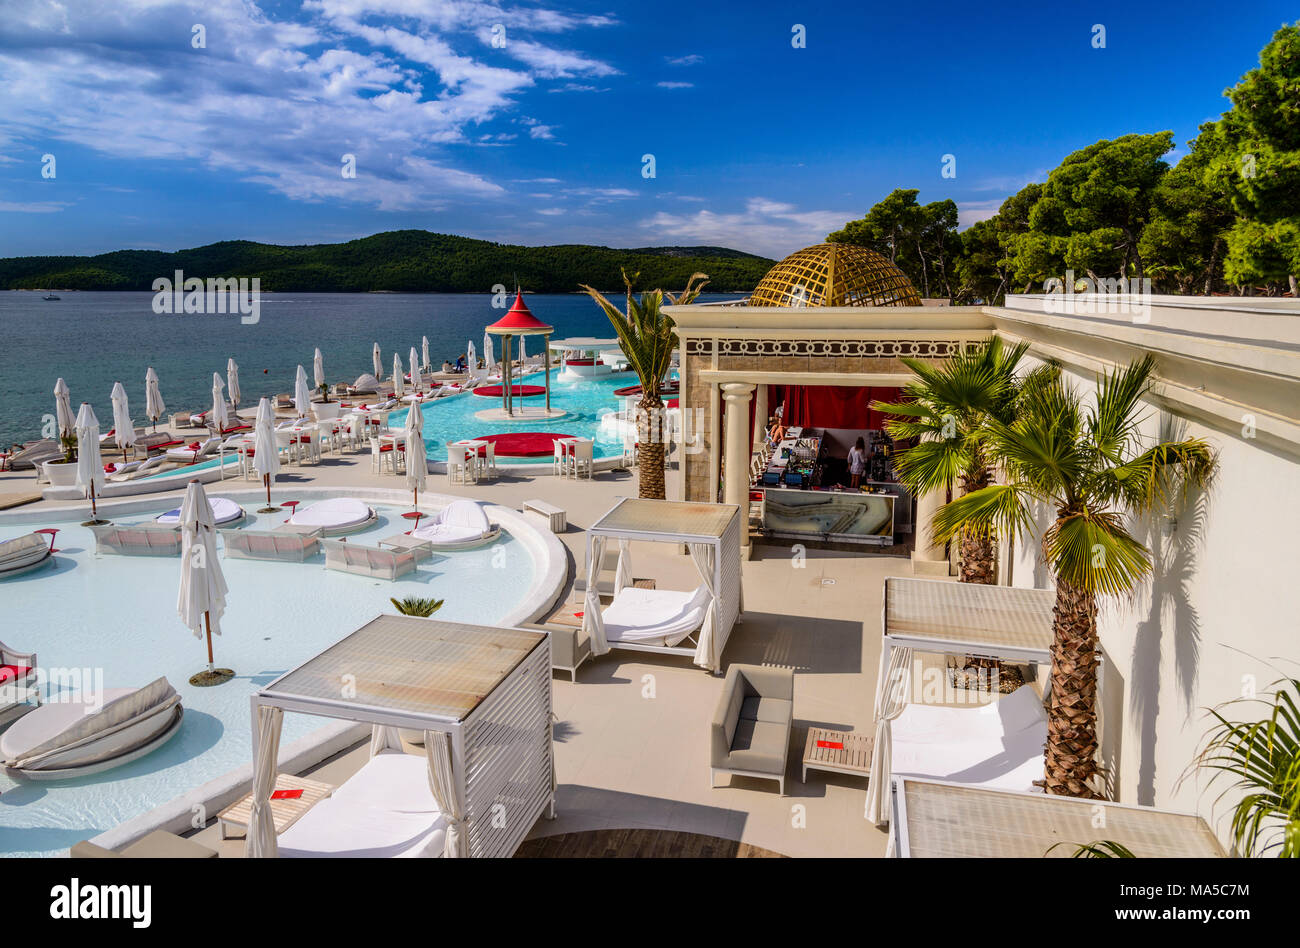 La Croatie, Dalmatie, Sibenik, Solaris Beach Resort, En Vogue Beach Club Photo Stock